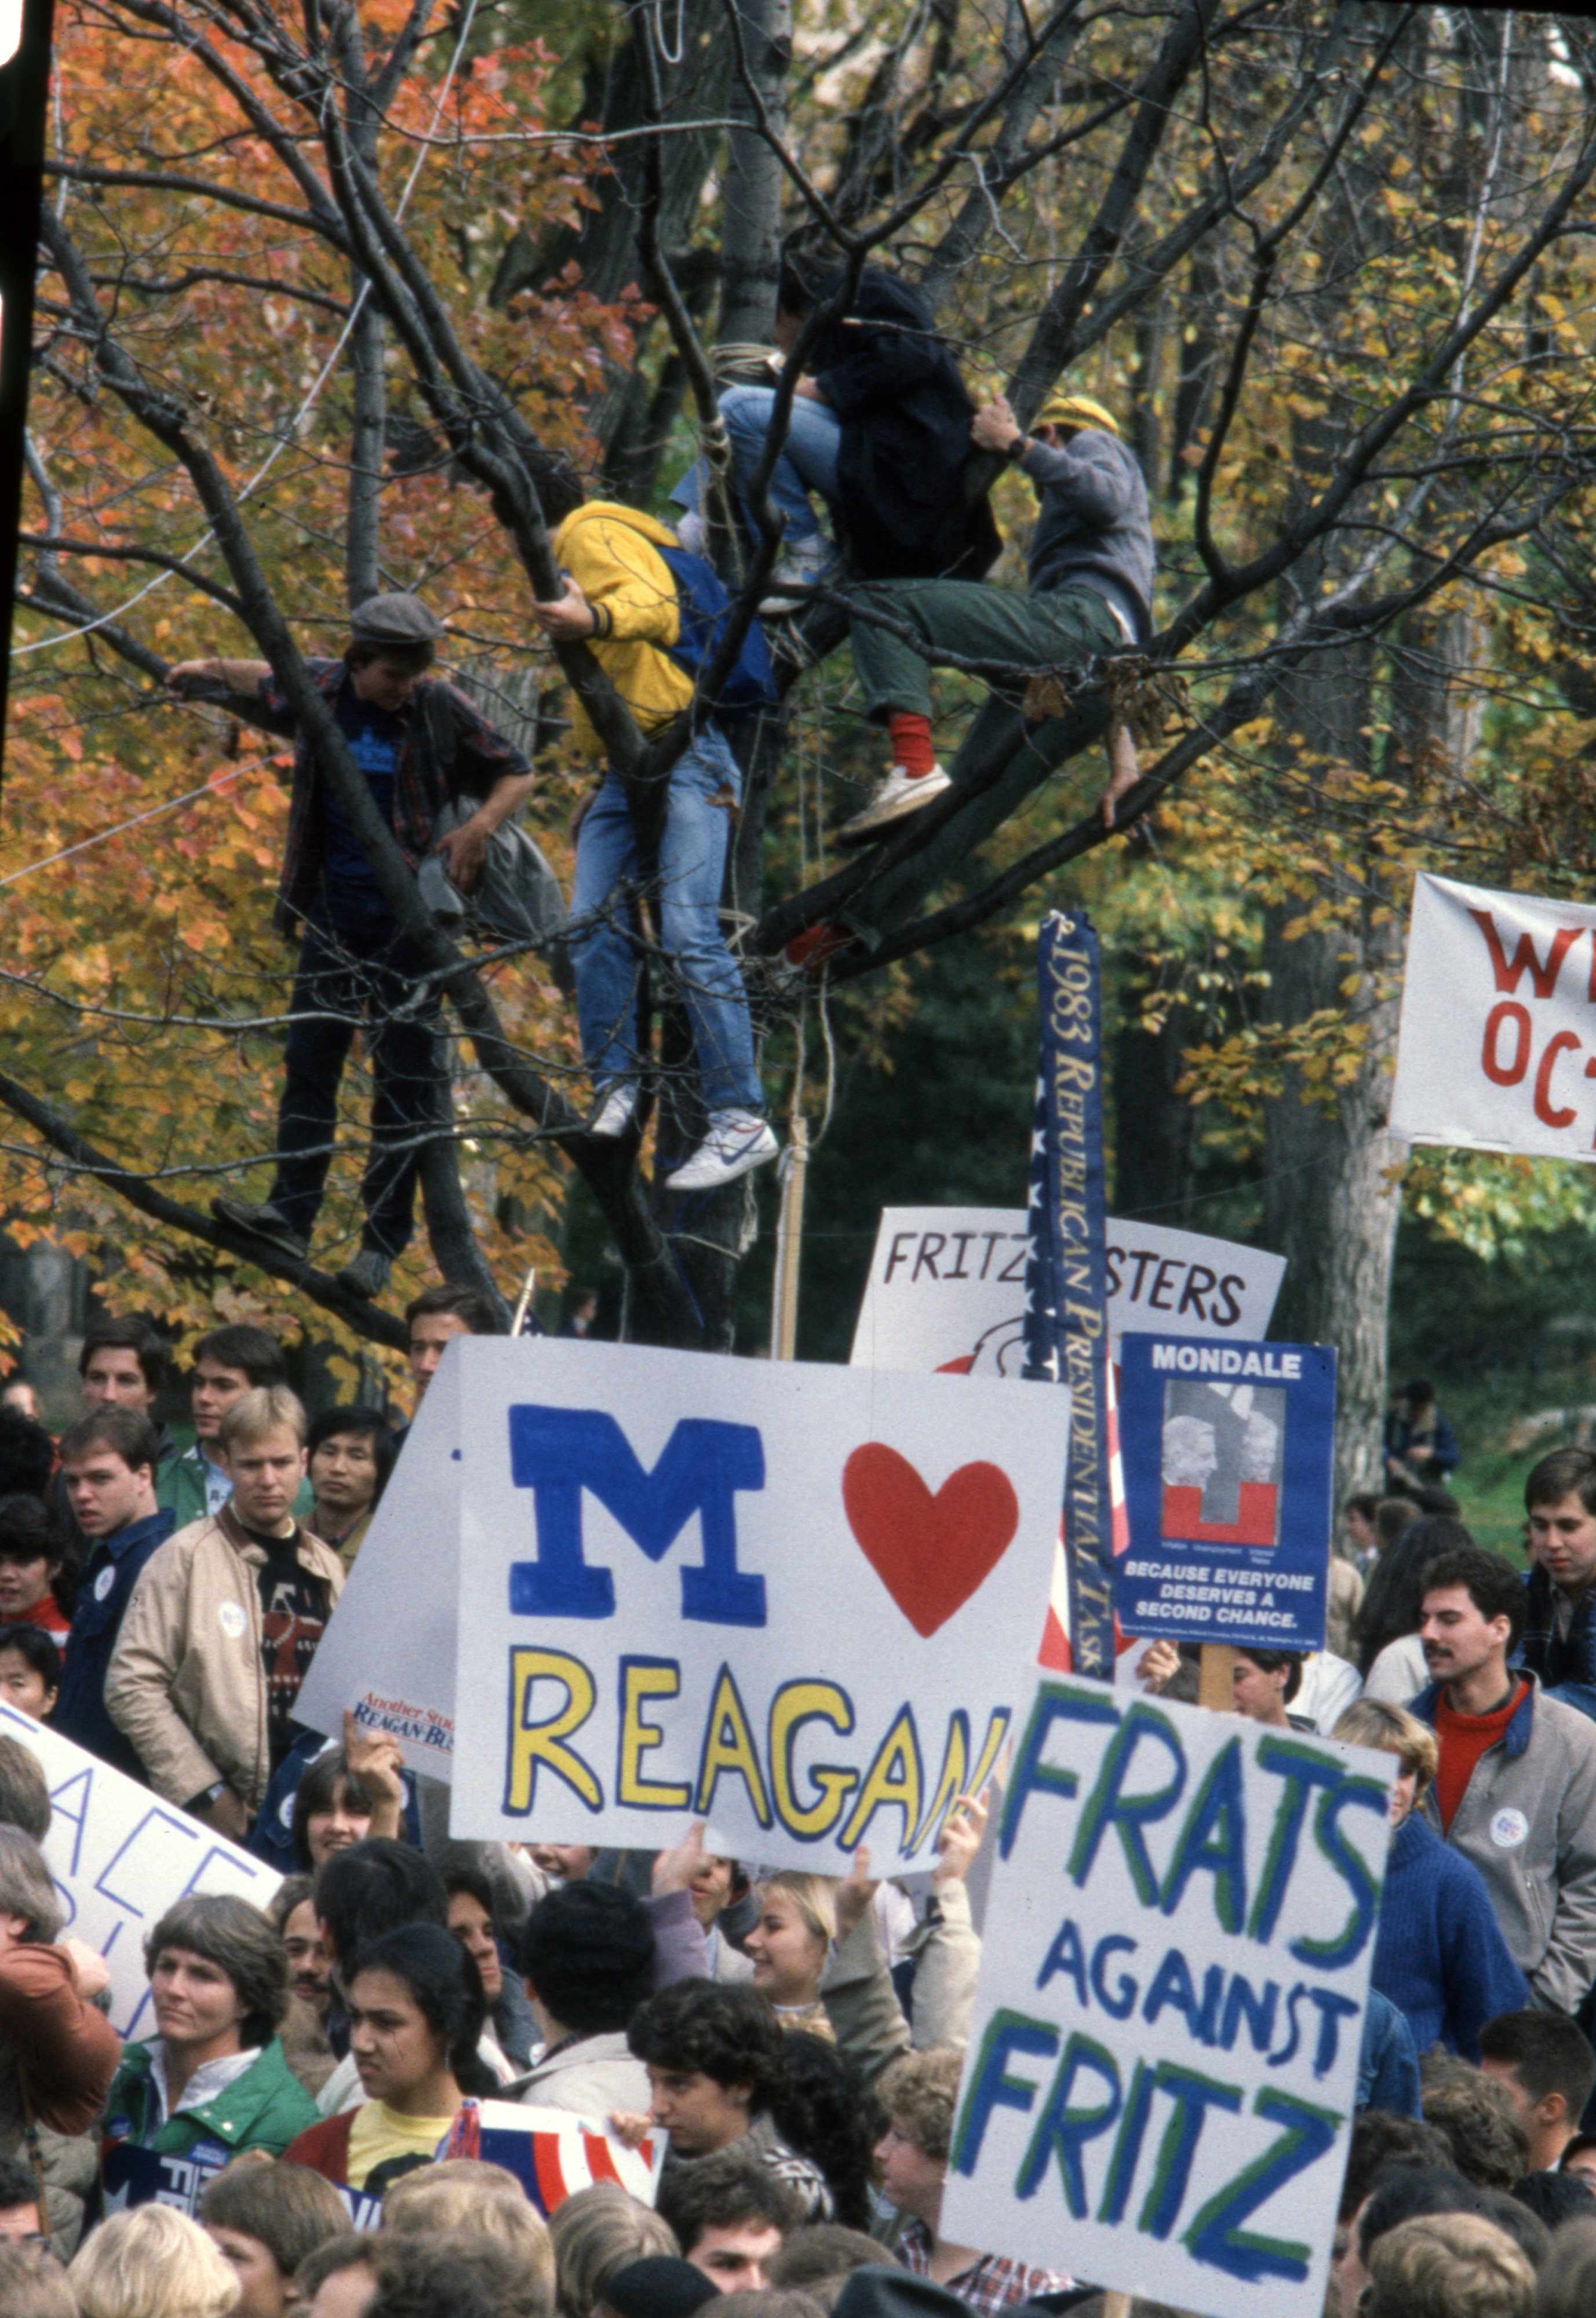 Crowd Gathered On The Diag For Walter Mondale's Campaign Rally, October 1984 image